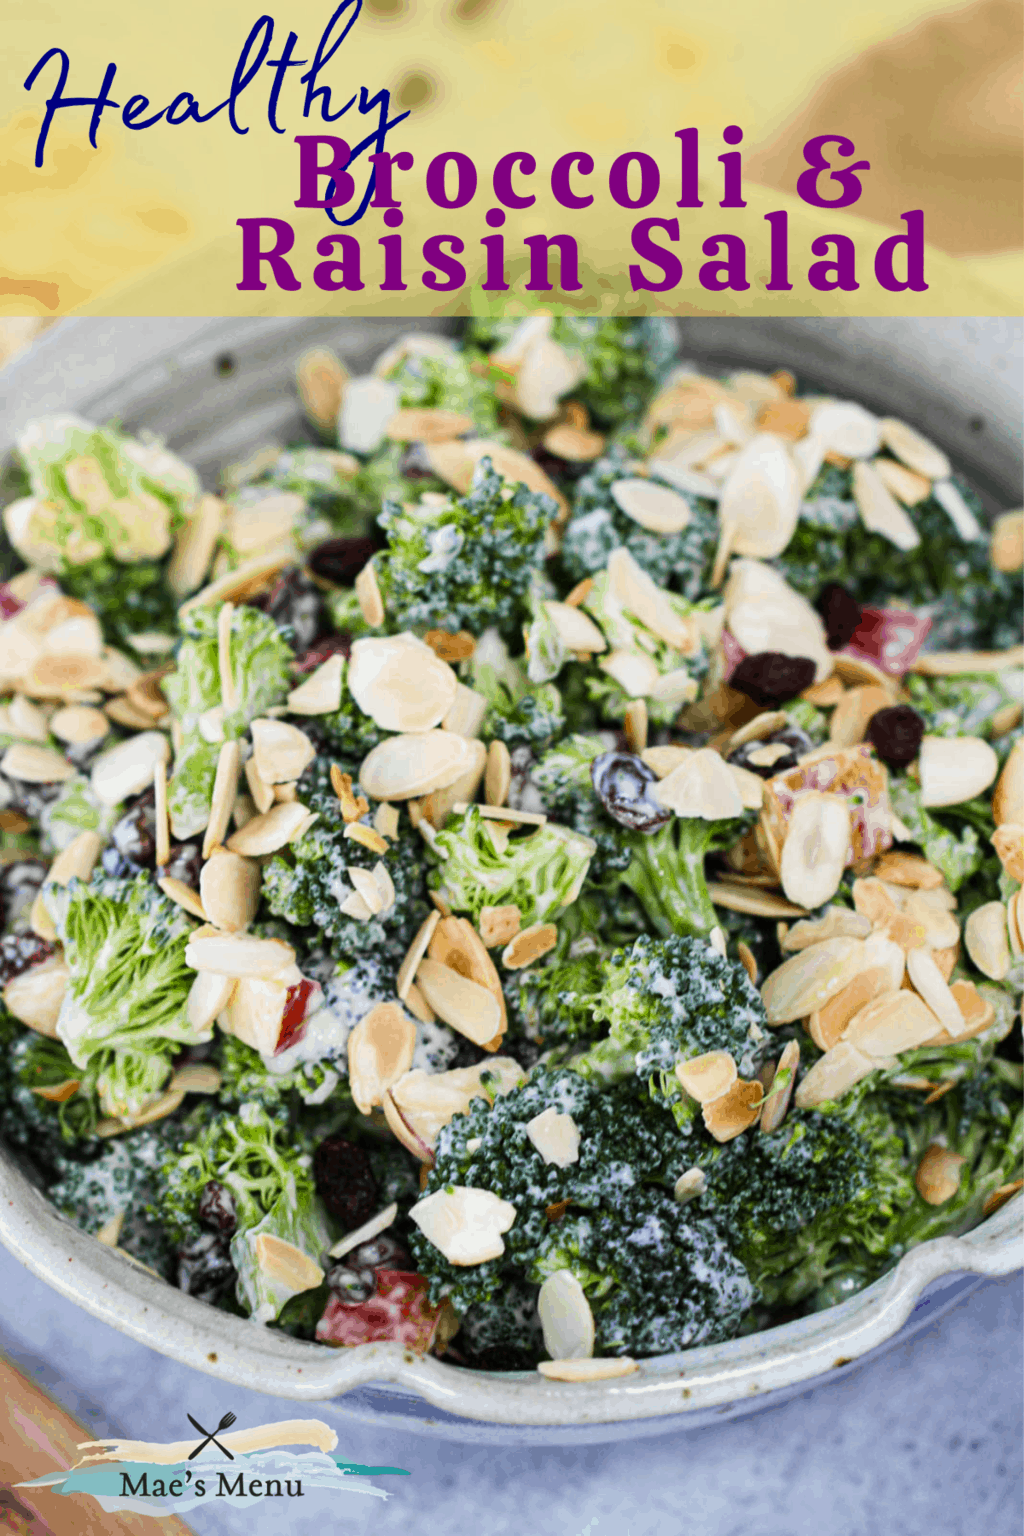 A pinterest pin for healthy broccoli raisin salad with an up-close shot of the salad in a mixing bowl